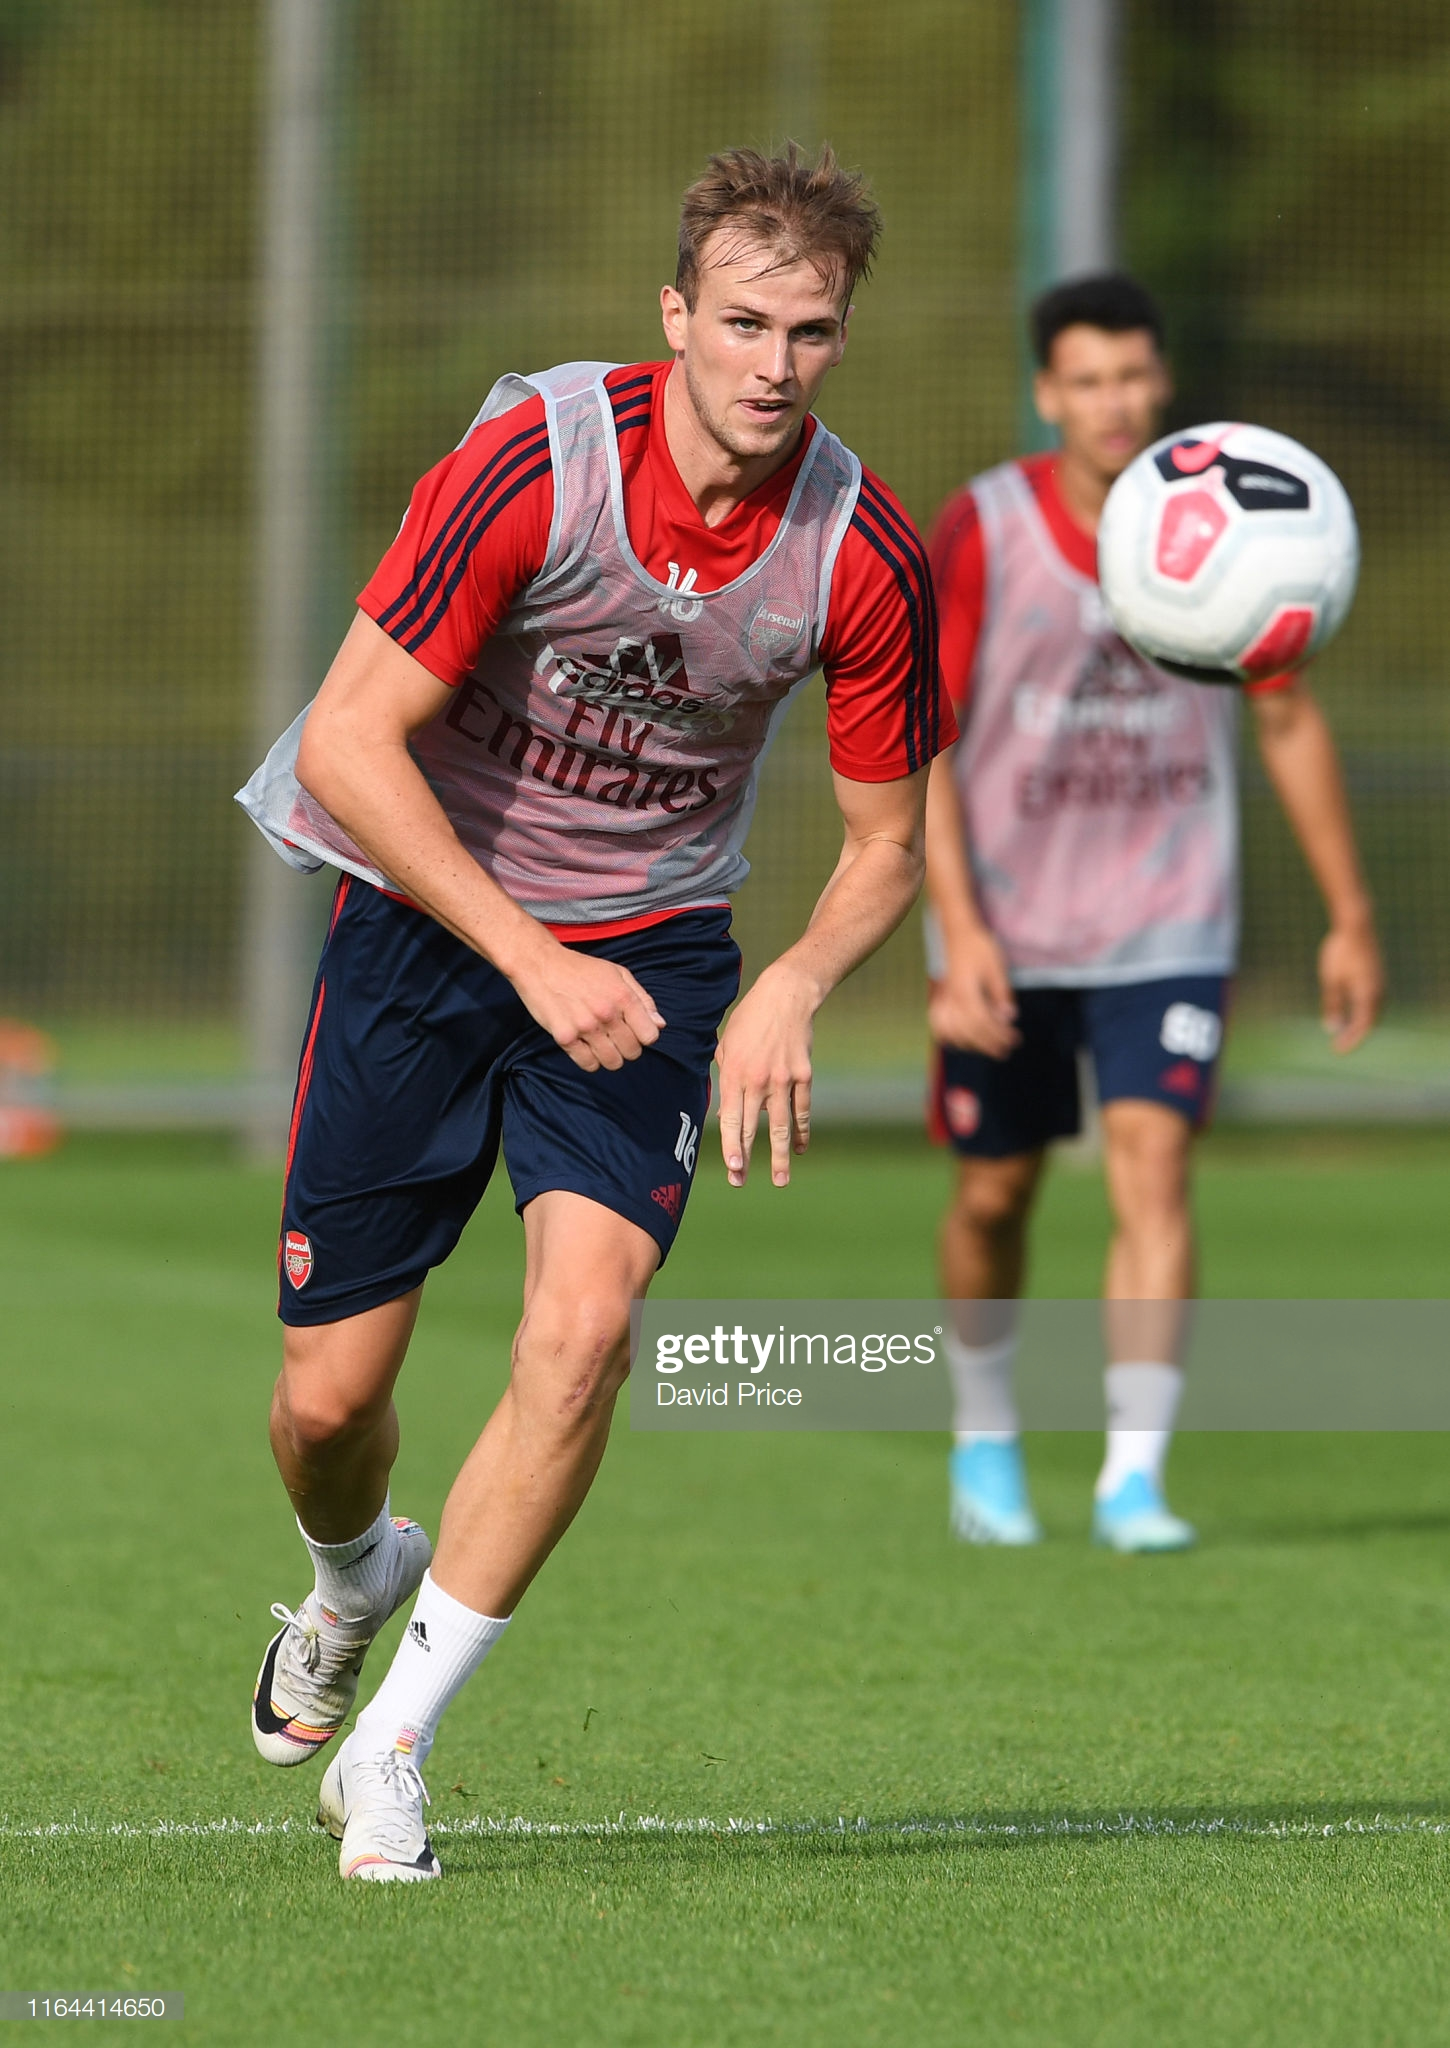 ST ALBANS, ENGLAND - JULY 26: Rob Holding of Arsenal during the Arsenal Training Session at London Colney on July 26, 2019, in St Albans, England. (Photo by David Price/Arsenal FC via Getty Images)